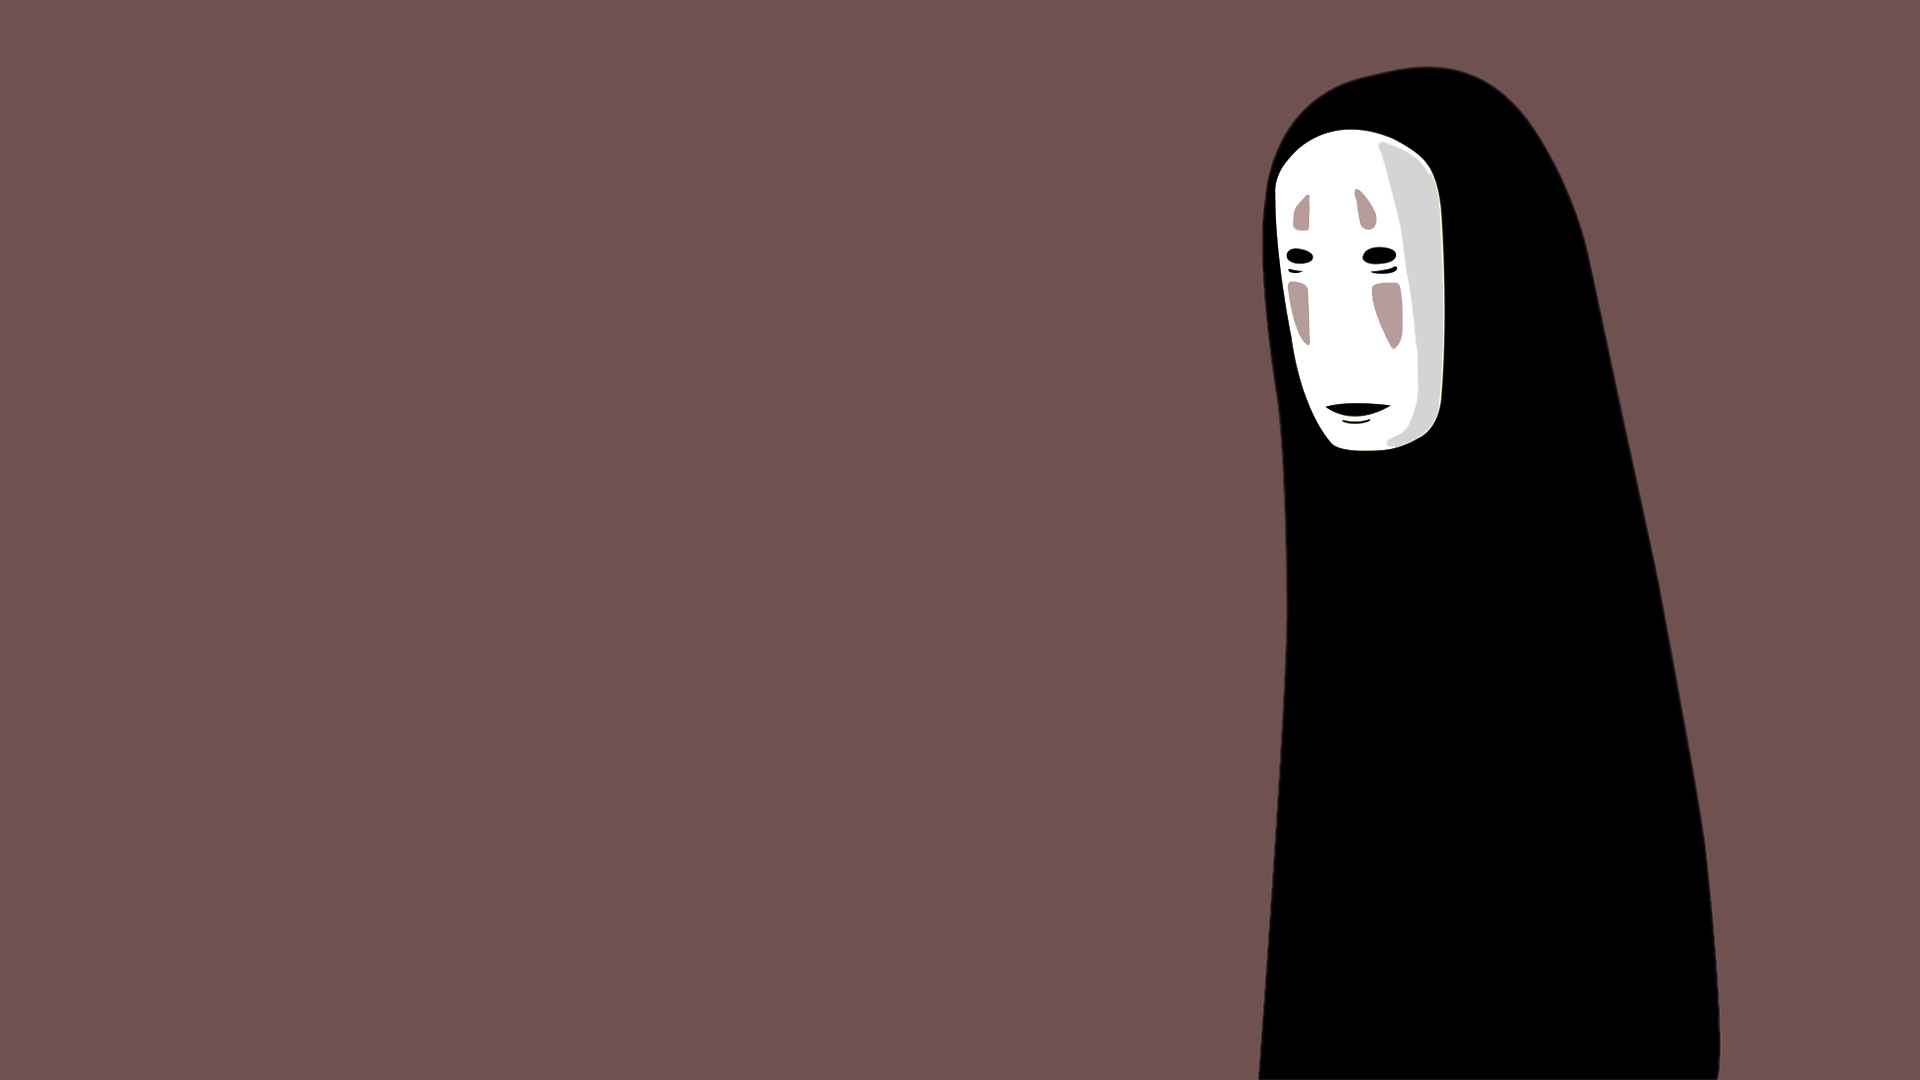 NoFace (You kiddos want some gold?) wallpapers